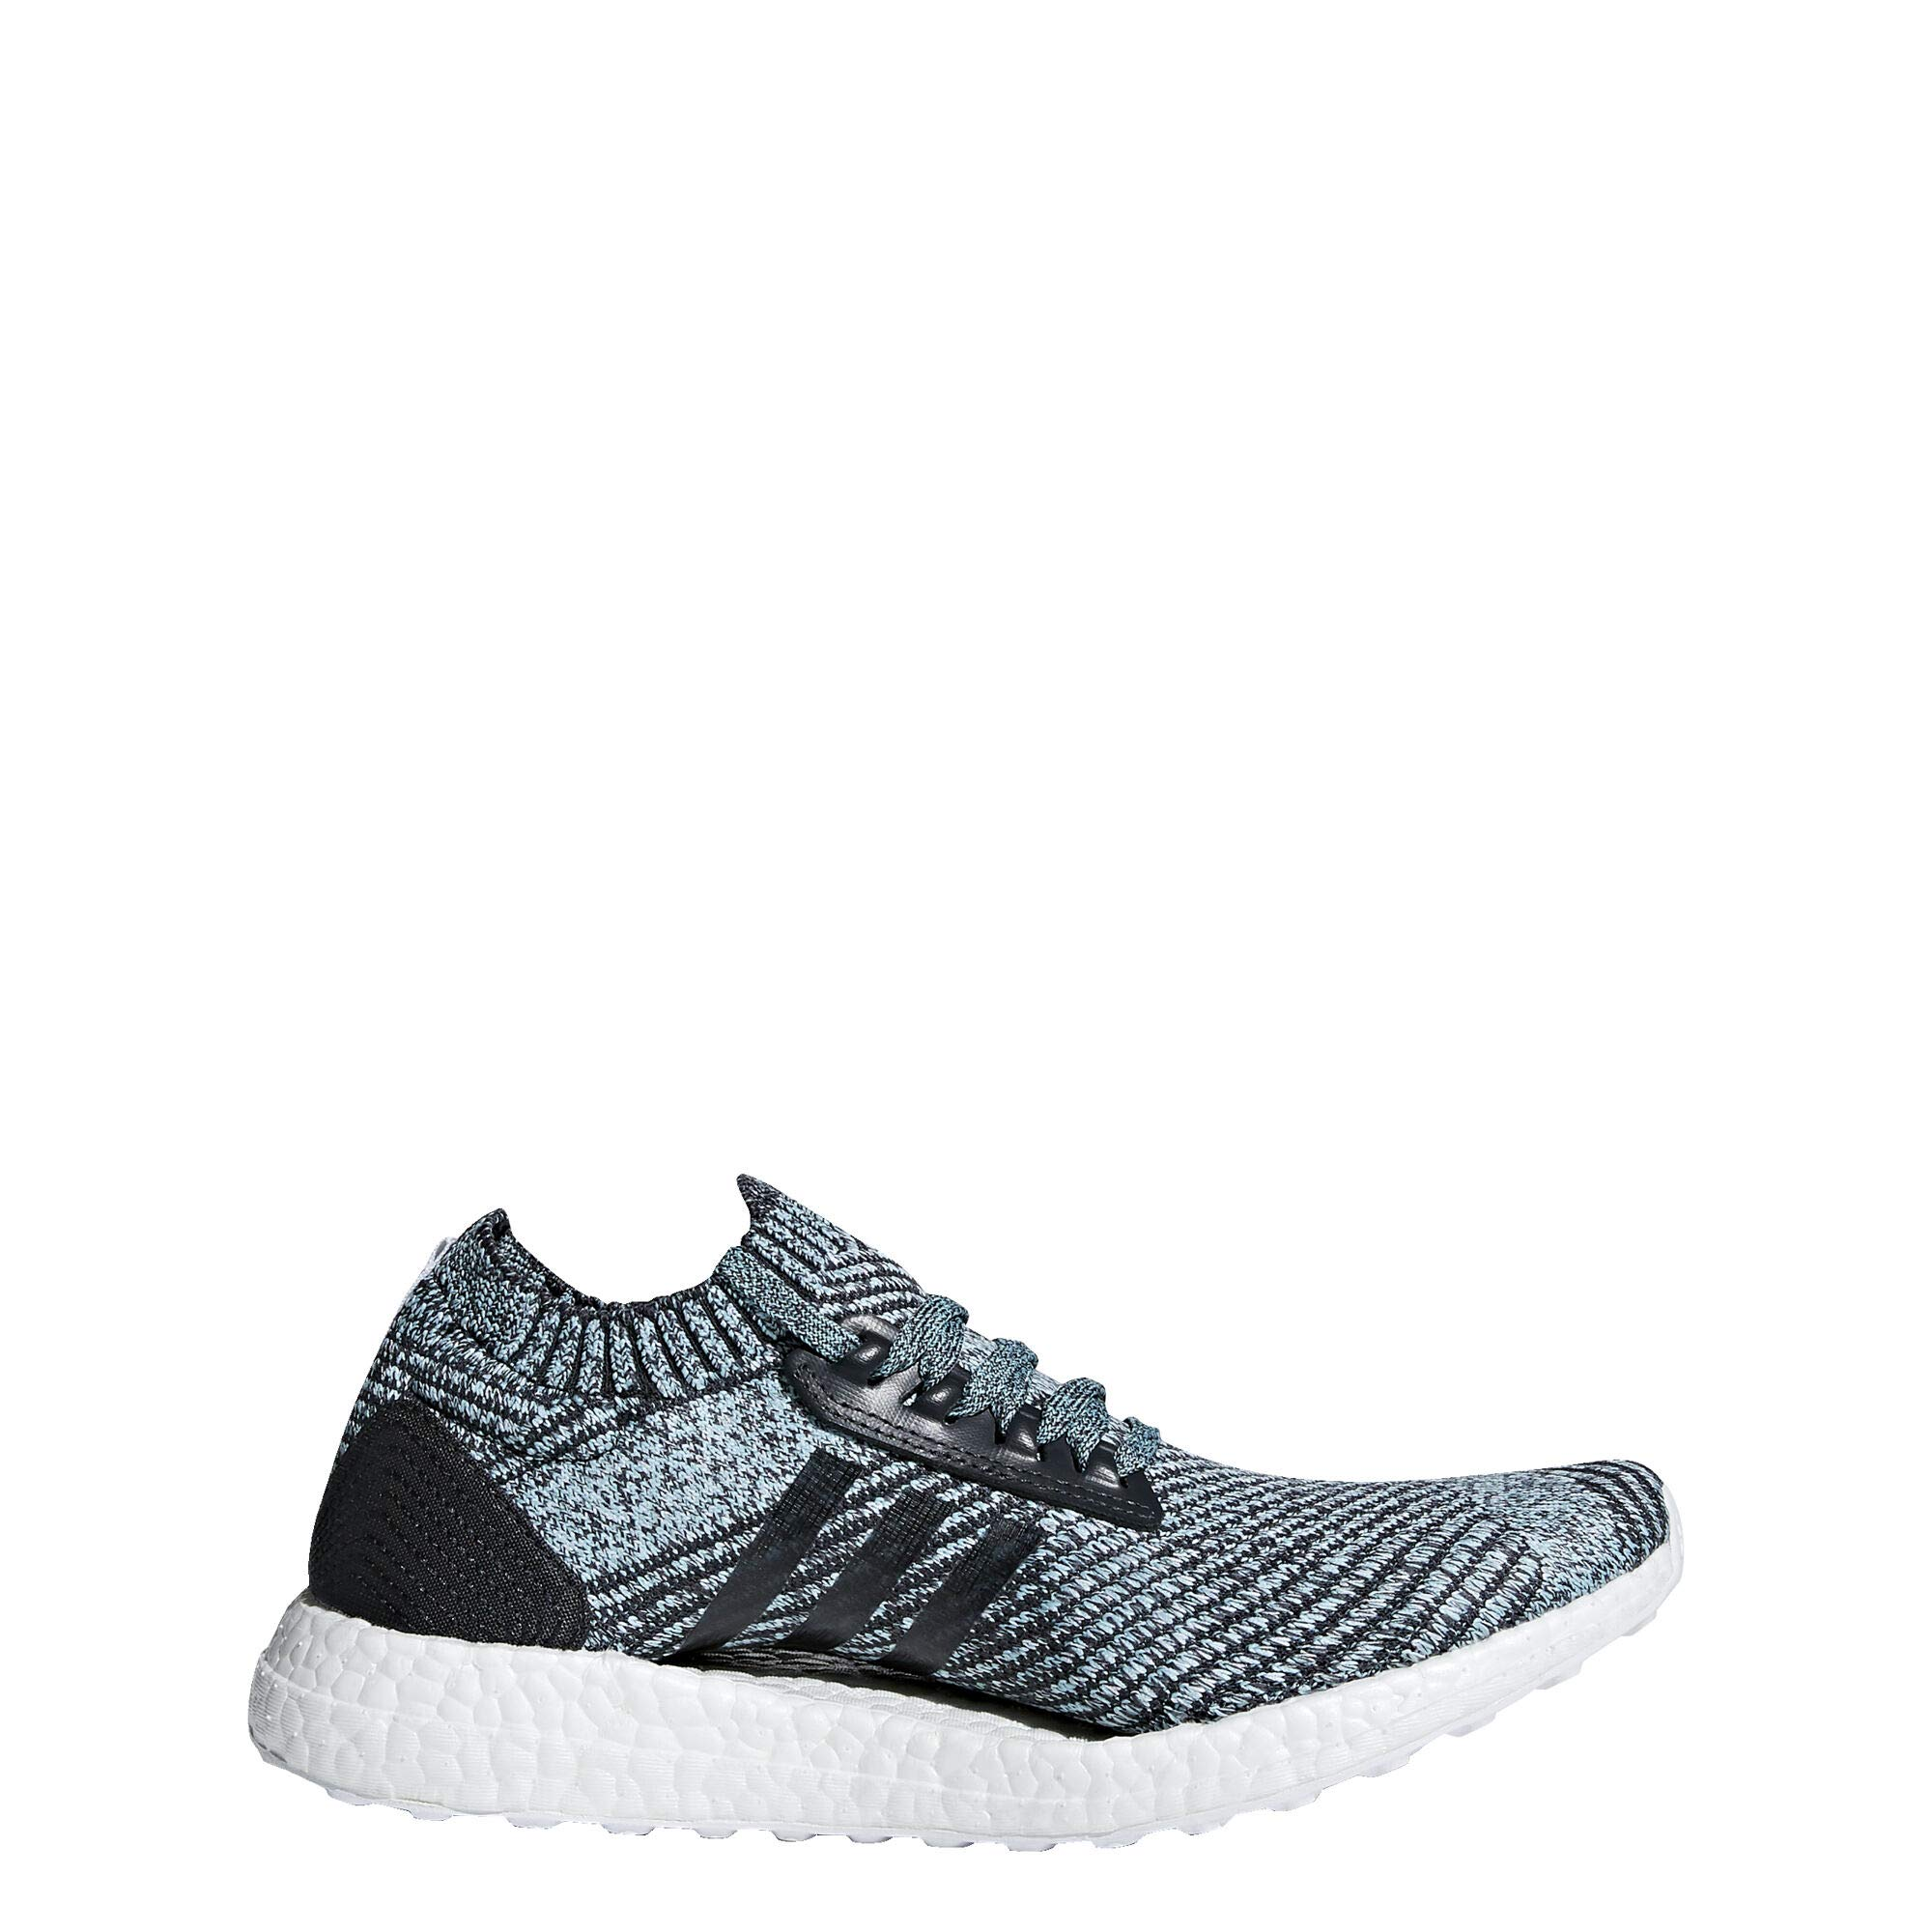 adidas Women's Ultraboost Parley Running Shoe, Carbon s, Blue Spirit s, 11.5 M US by adidas